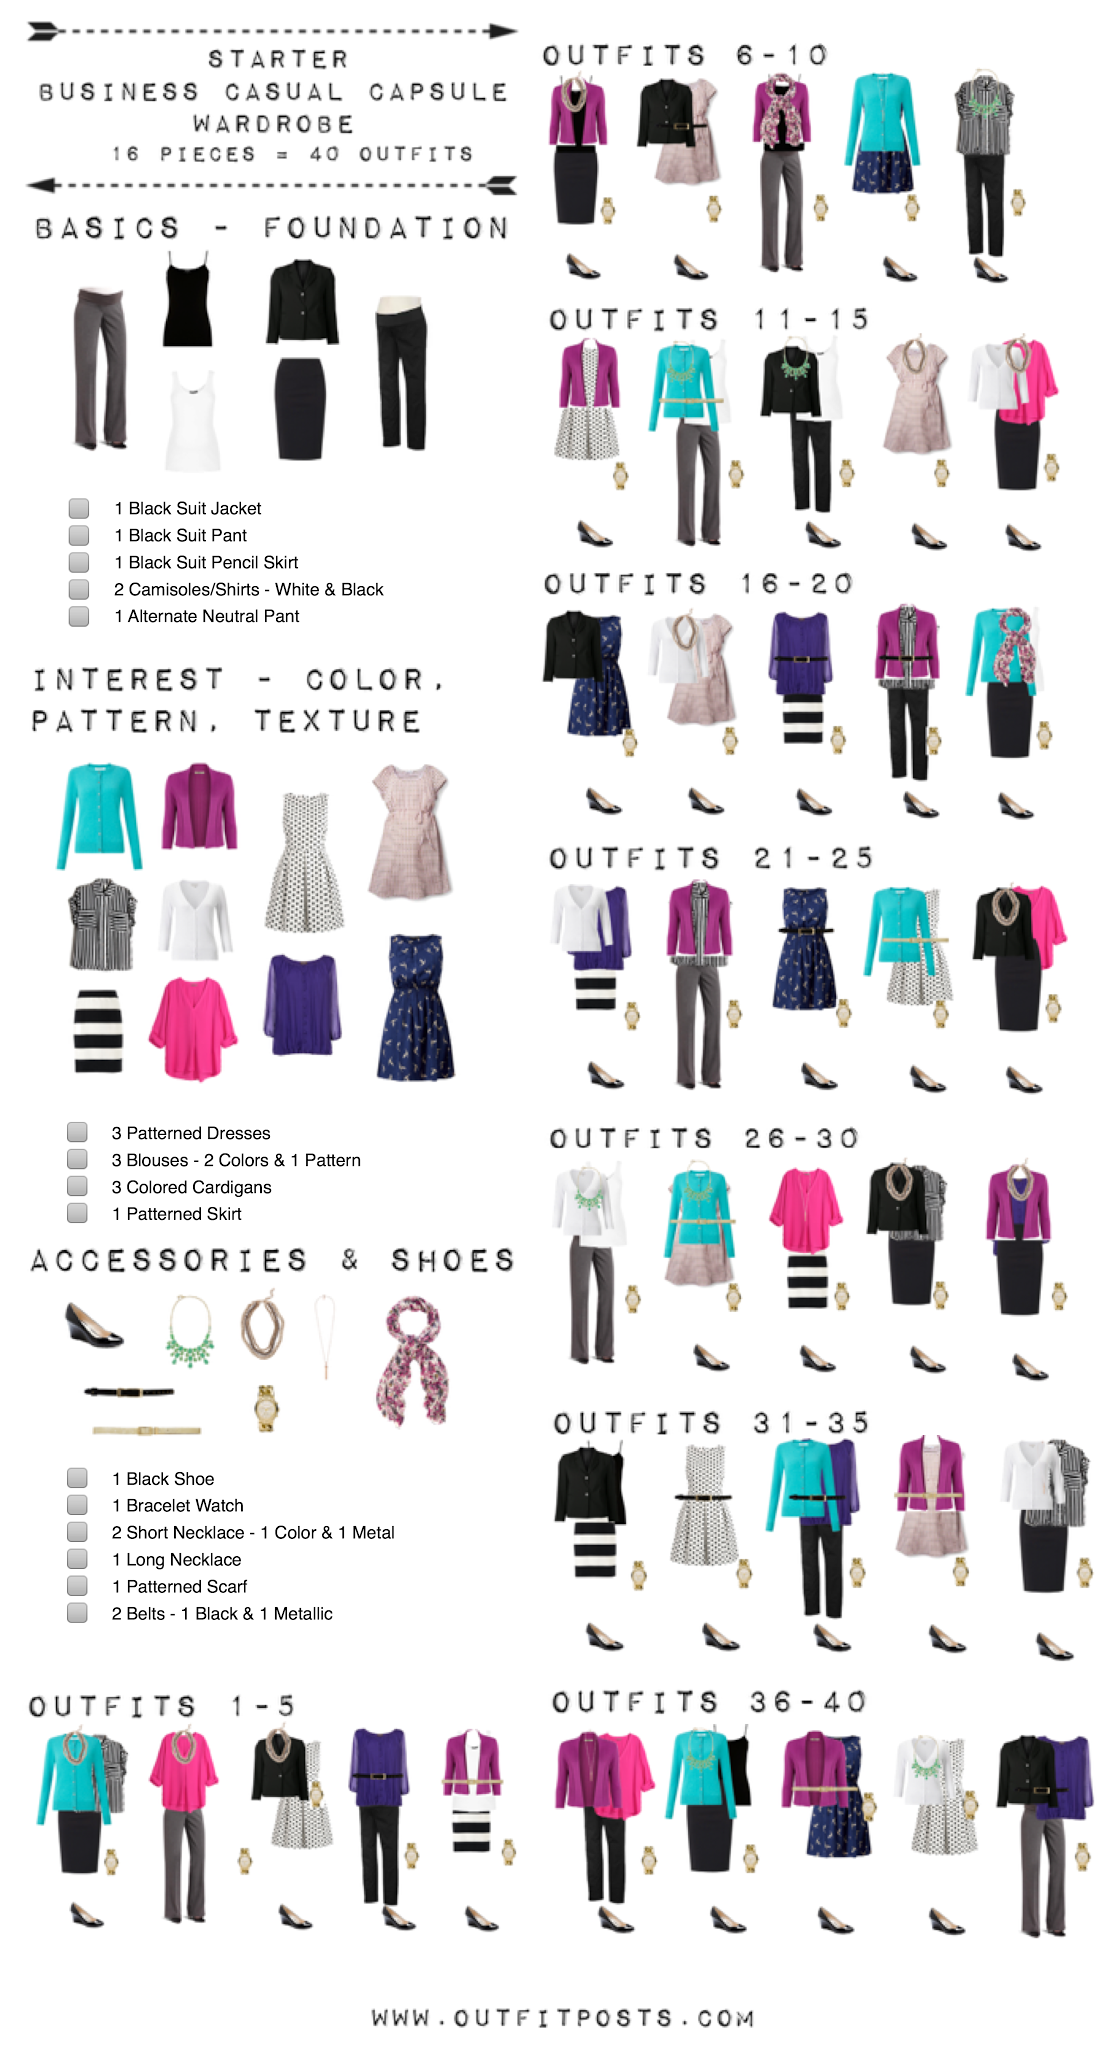 Capsule Wardrobe: Starter Business Casual Capsule Wardrobe Checklist